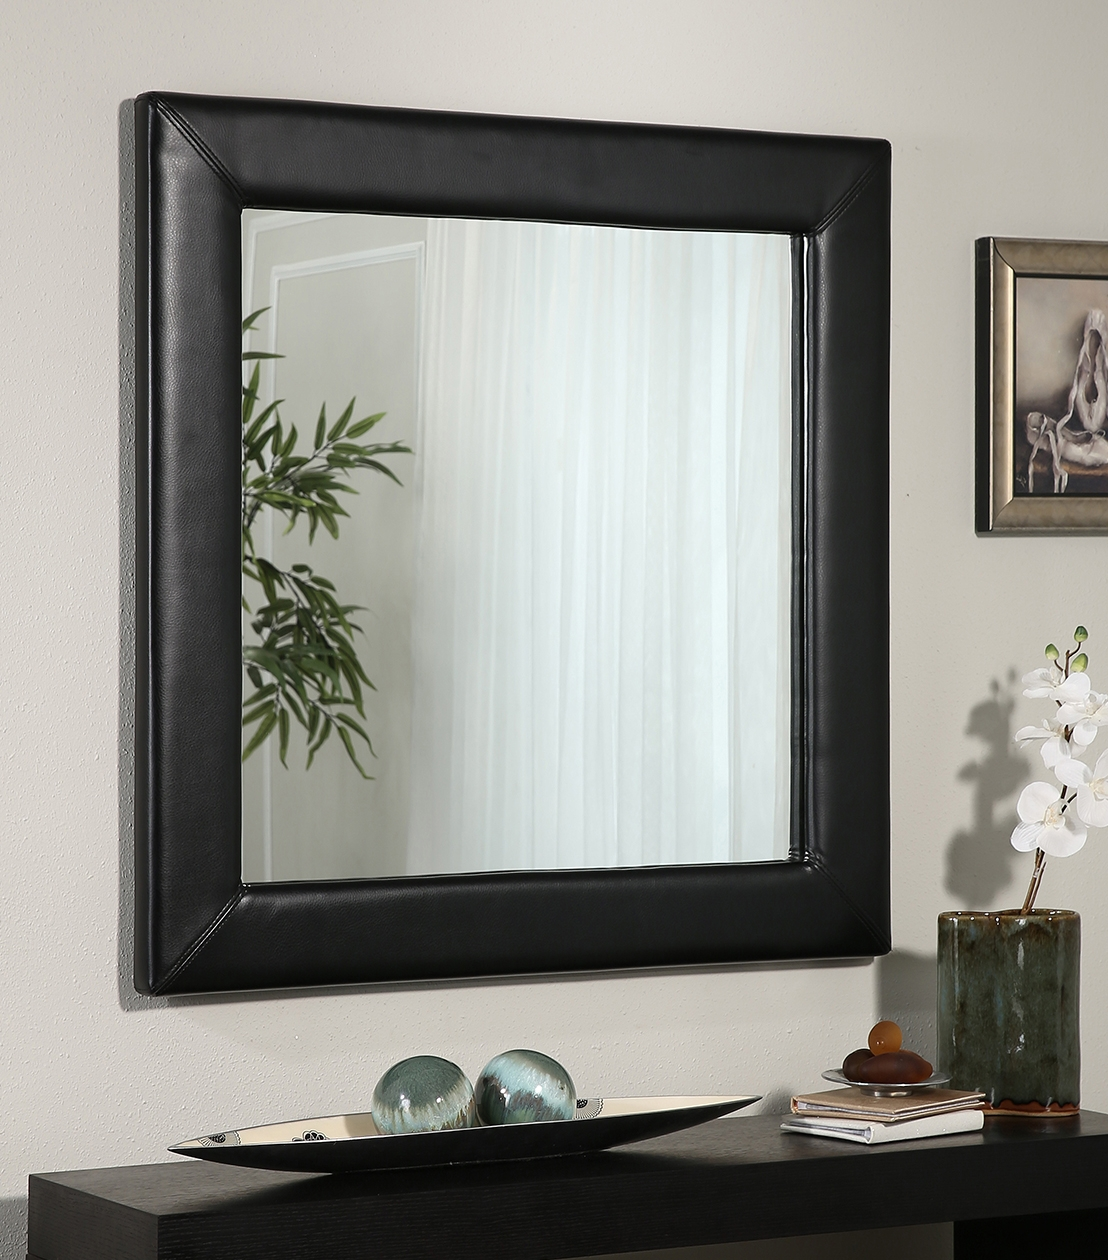 Mirrors Marlowe Black Leather Square Wall Mirror Intended For Leather Mirrors (View 8 of 15)